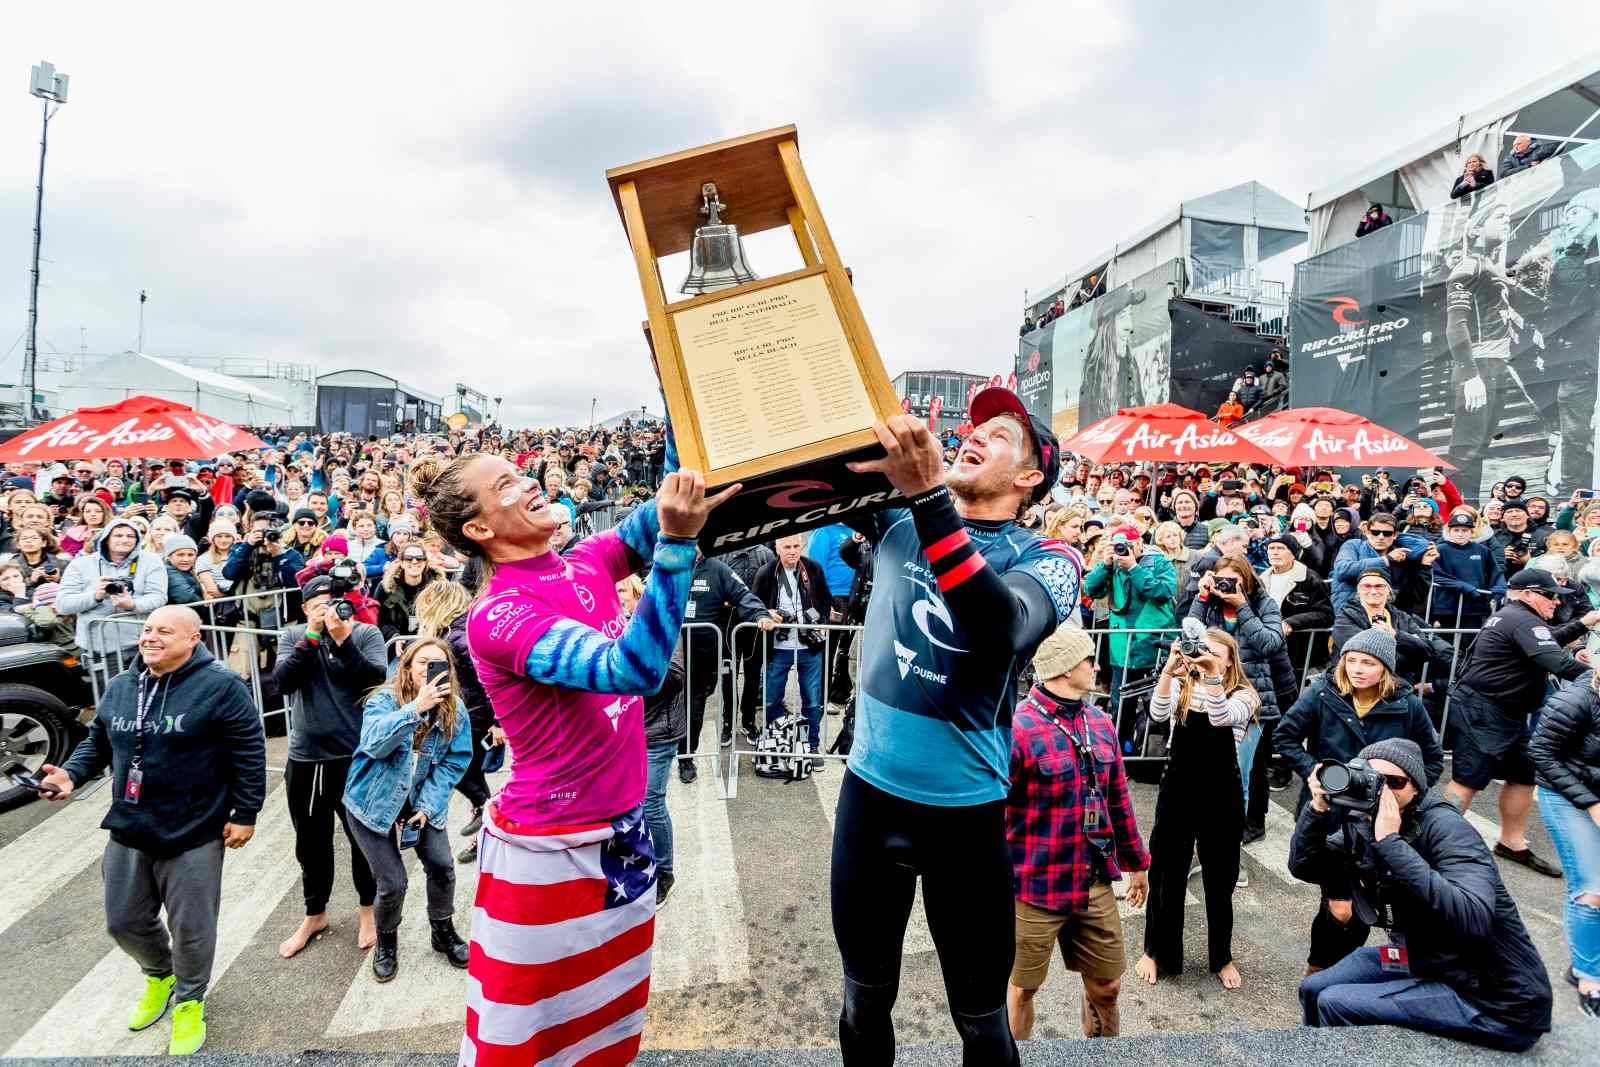 Two-time world champion John John Florence of Hawaii and Courtney Conlogue of the USA win the 2019 Rip Curl Pro Bells Beach after winning the final at Bells Beach on April 27, 2019 in Victoria, Australia.